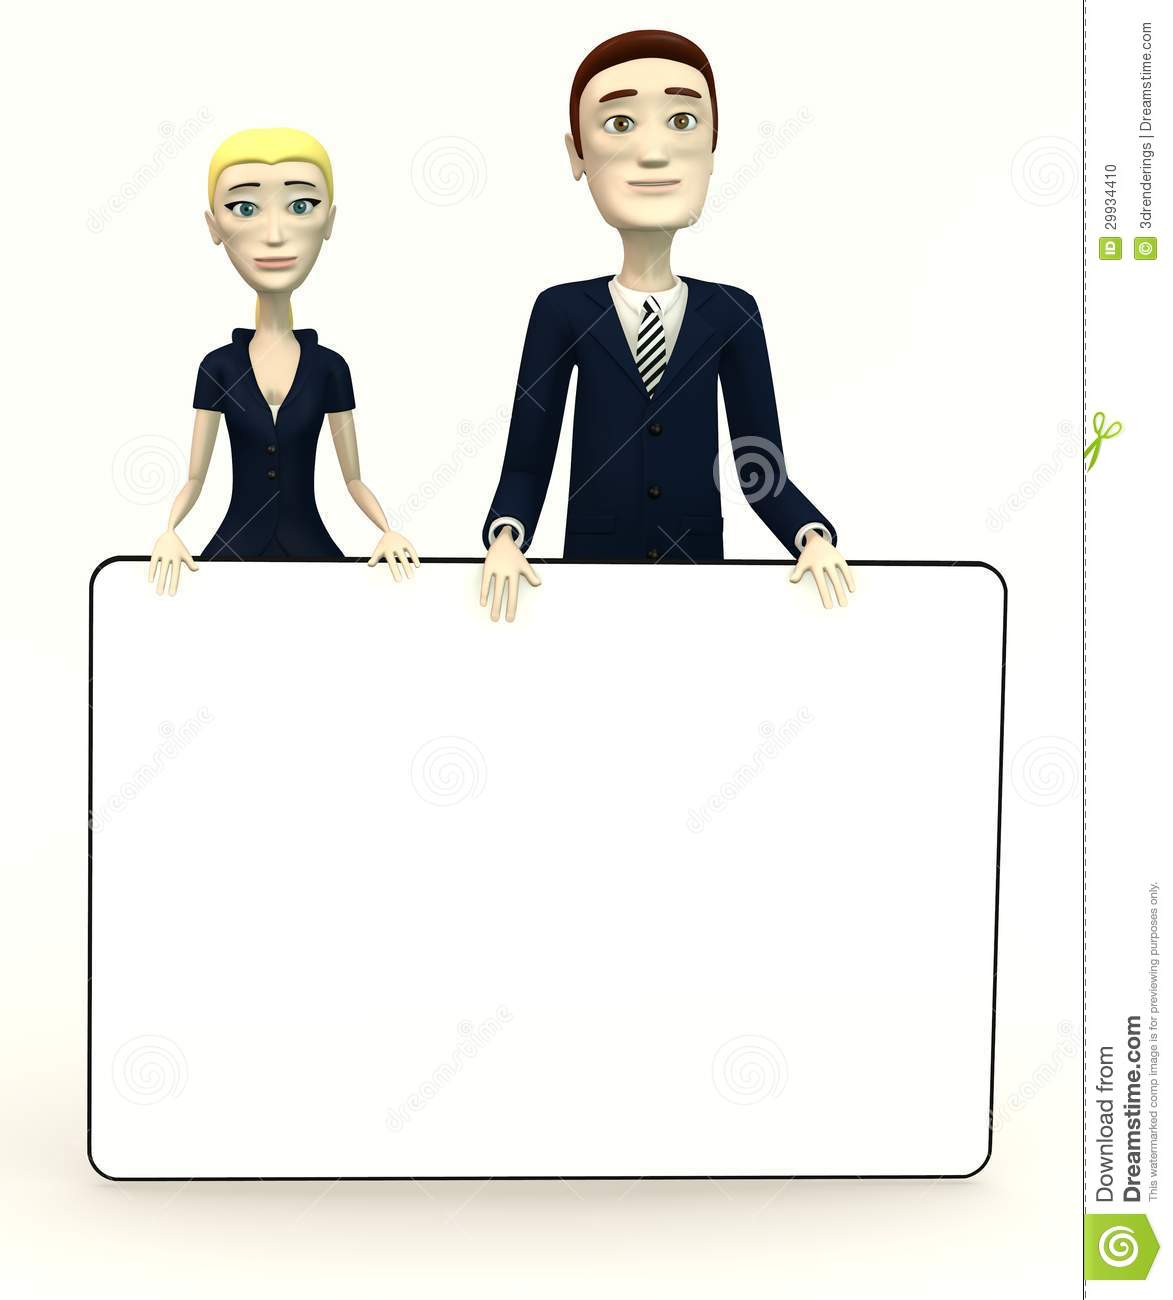 Cartoon Characters In Suits : Cartoon characters in suits with empty board stock photo